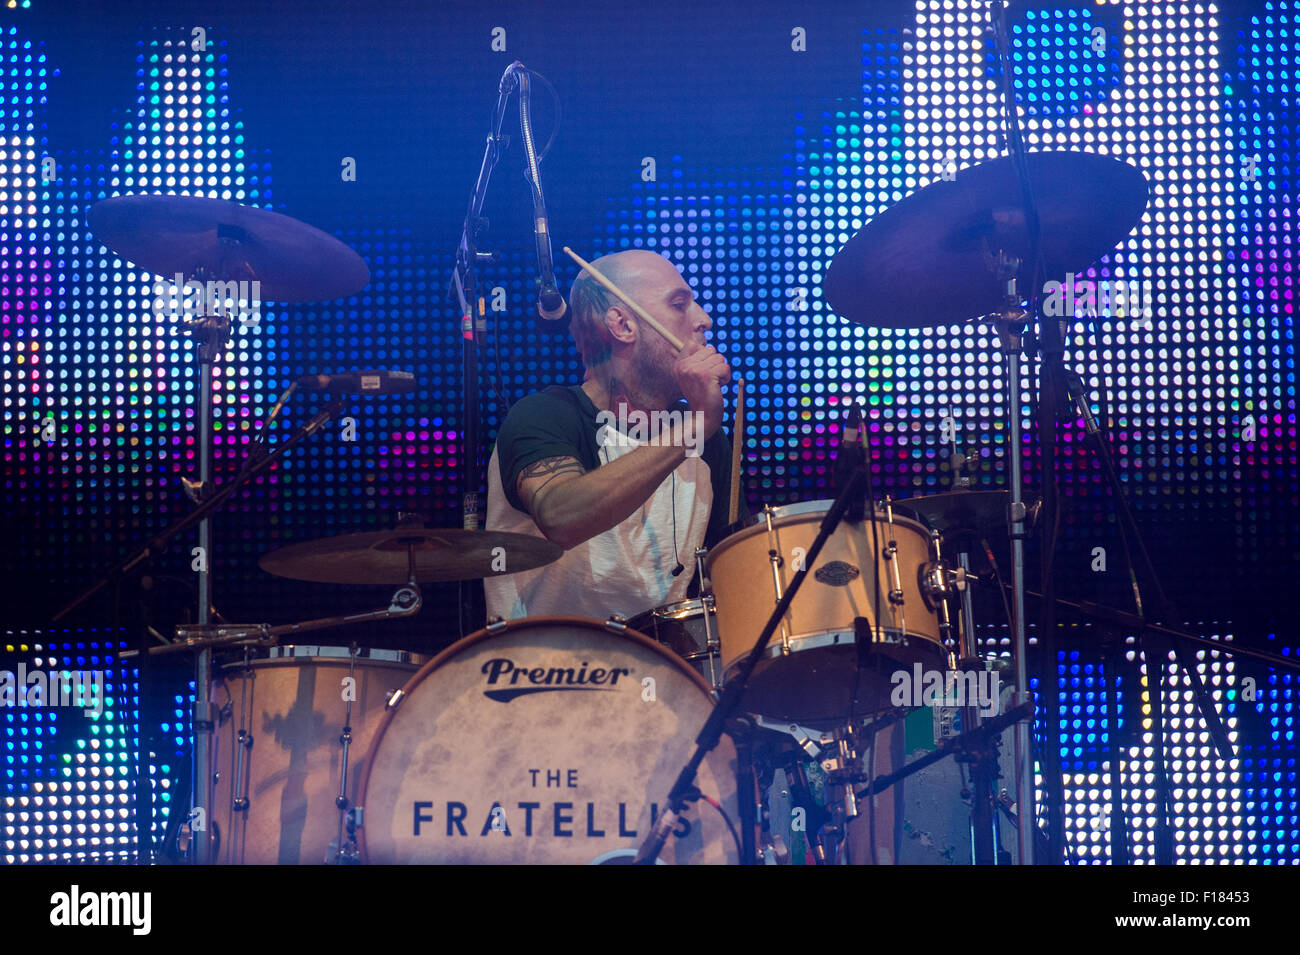 Portsmouth, UK. 29th August 2015. Victorious Festival - Saturday. Mince Fratelli, vocalist and drummer for the Fratellis, Stock Photo